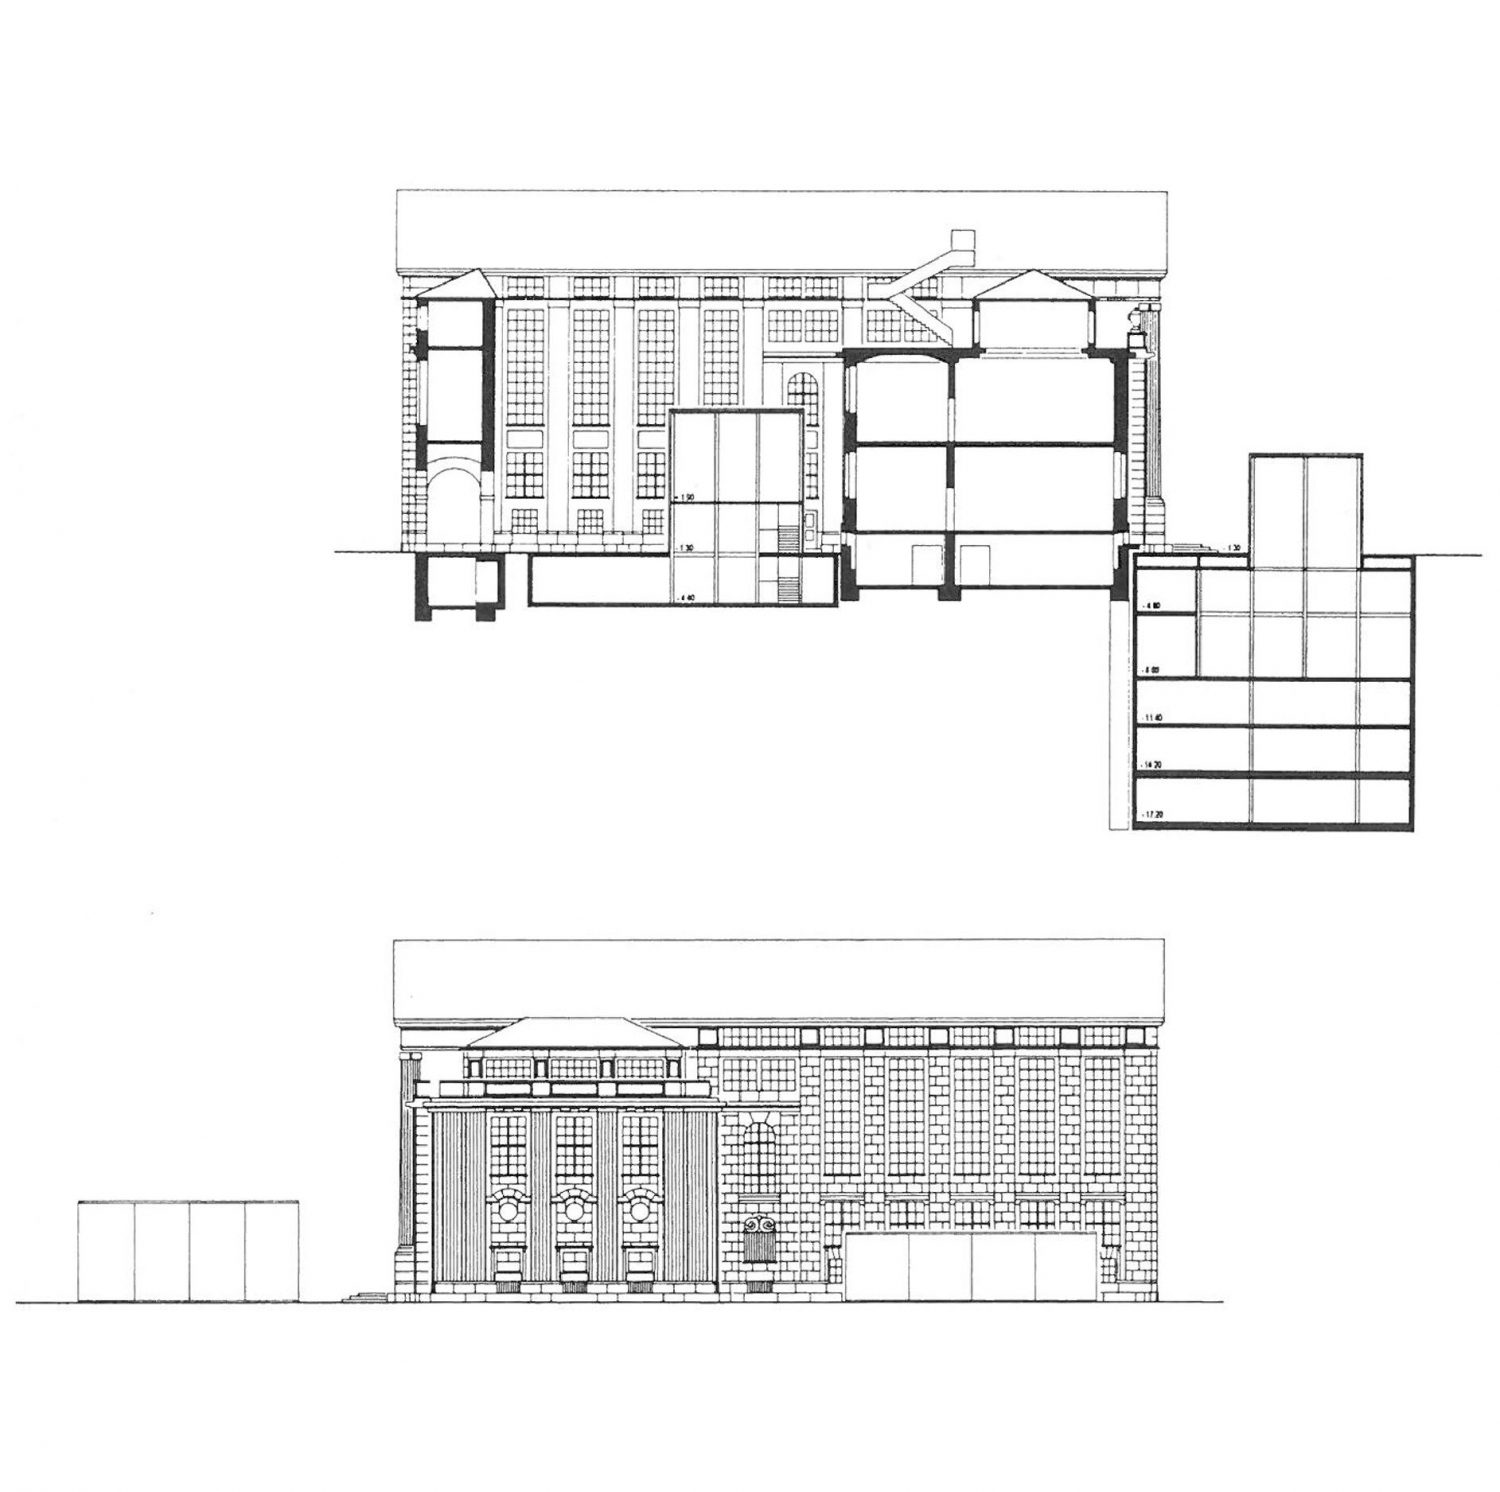 Section / Elevation